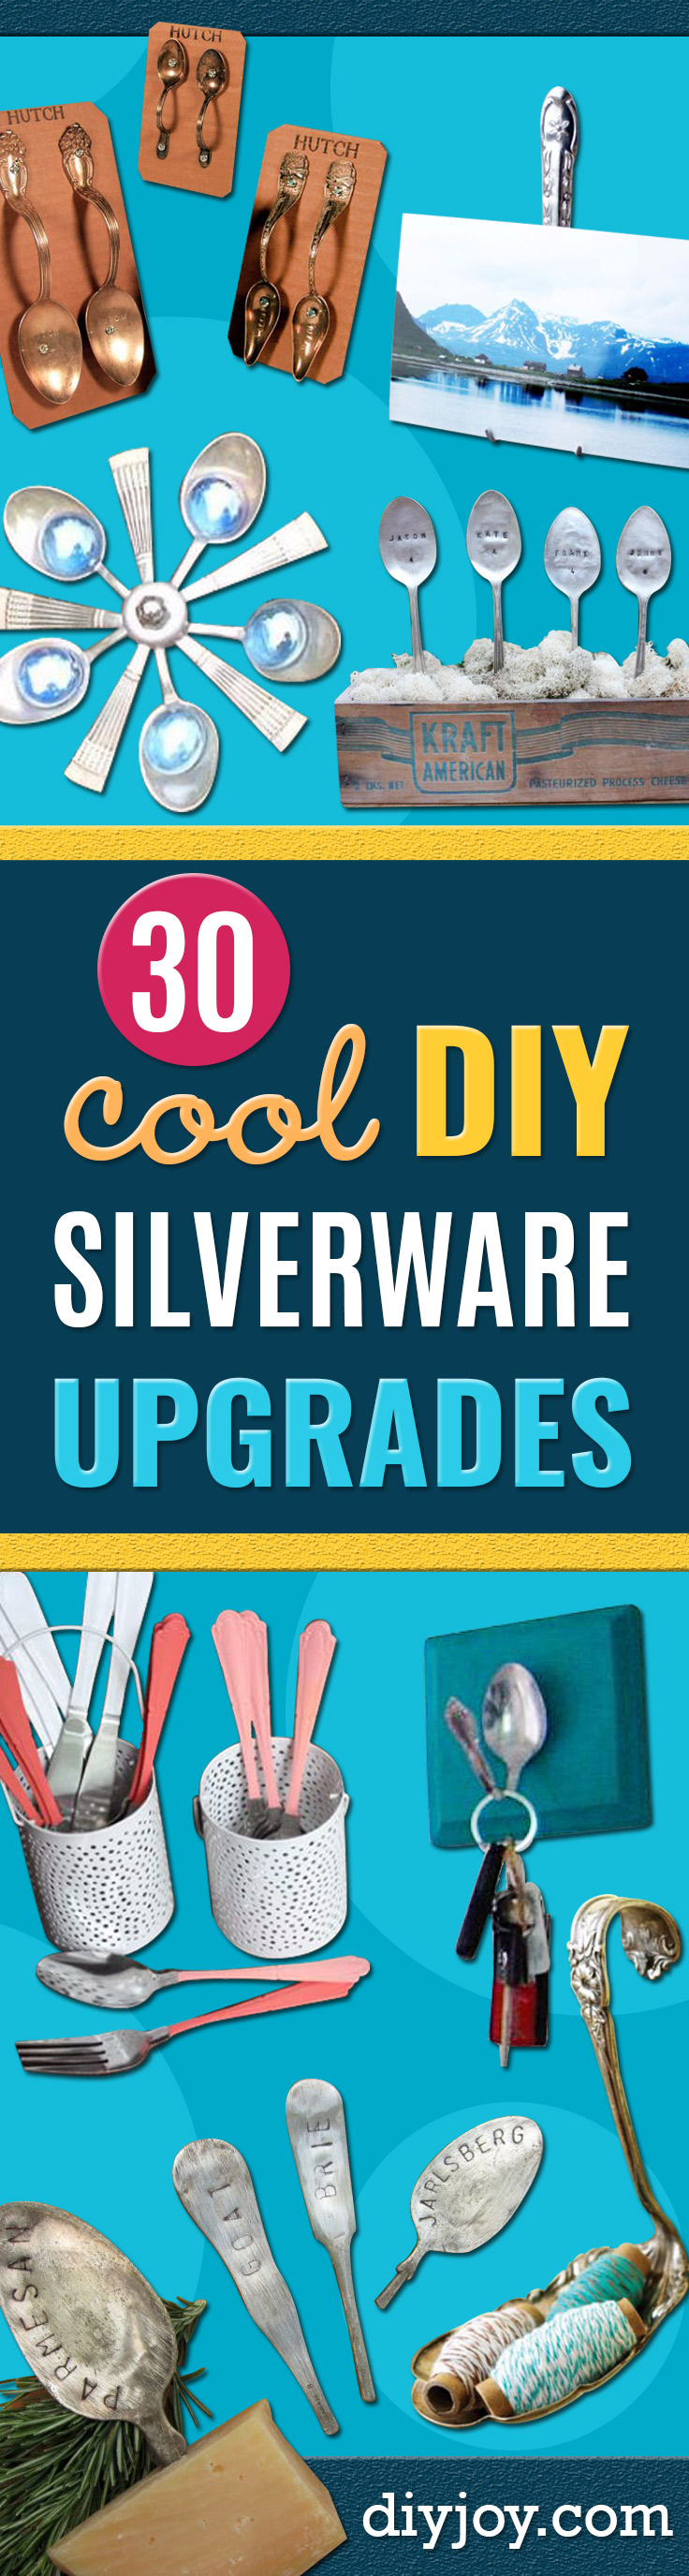 DIY Silverware Upgrades - Creative Crafts and Ways To Improve Boring Silver Ware and Place Settings - Paint, Decorate and Update Your Flatware With These Creative Do IT Yourself Tutorials- Forks, Knives and Spoons all Get Dressed Up With These New Looks For Kitchen and Dining Room